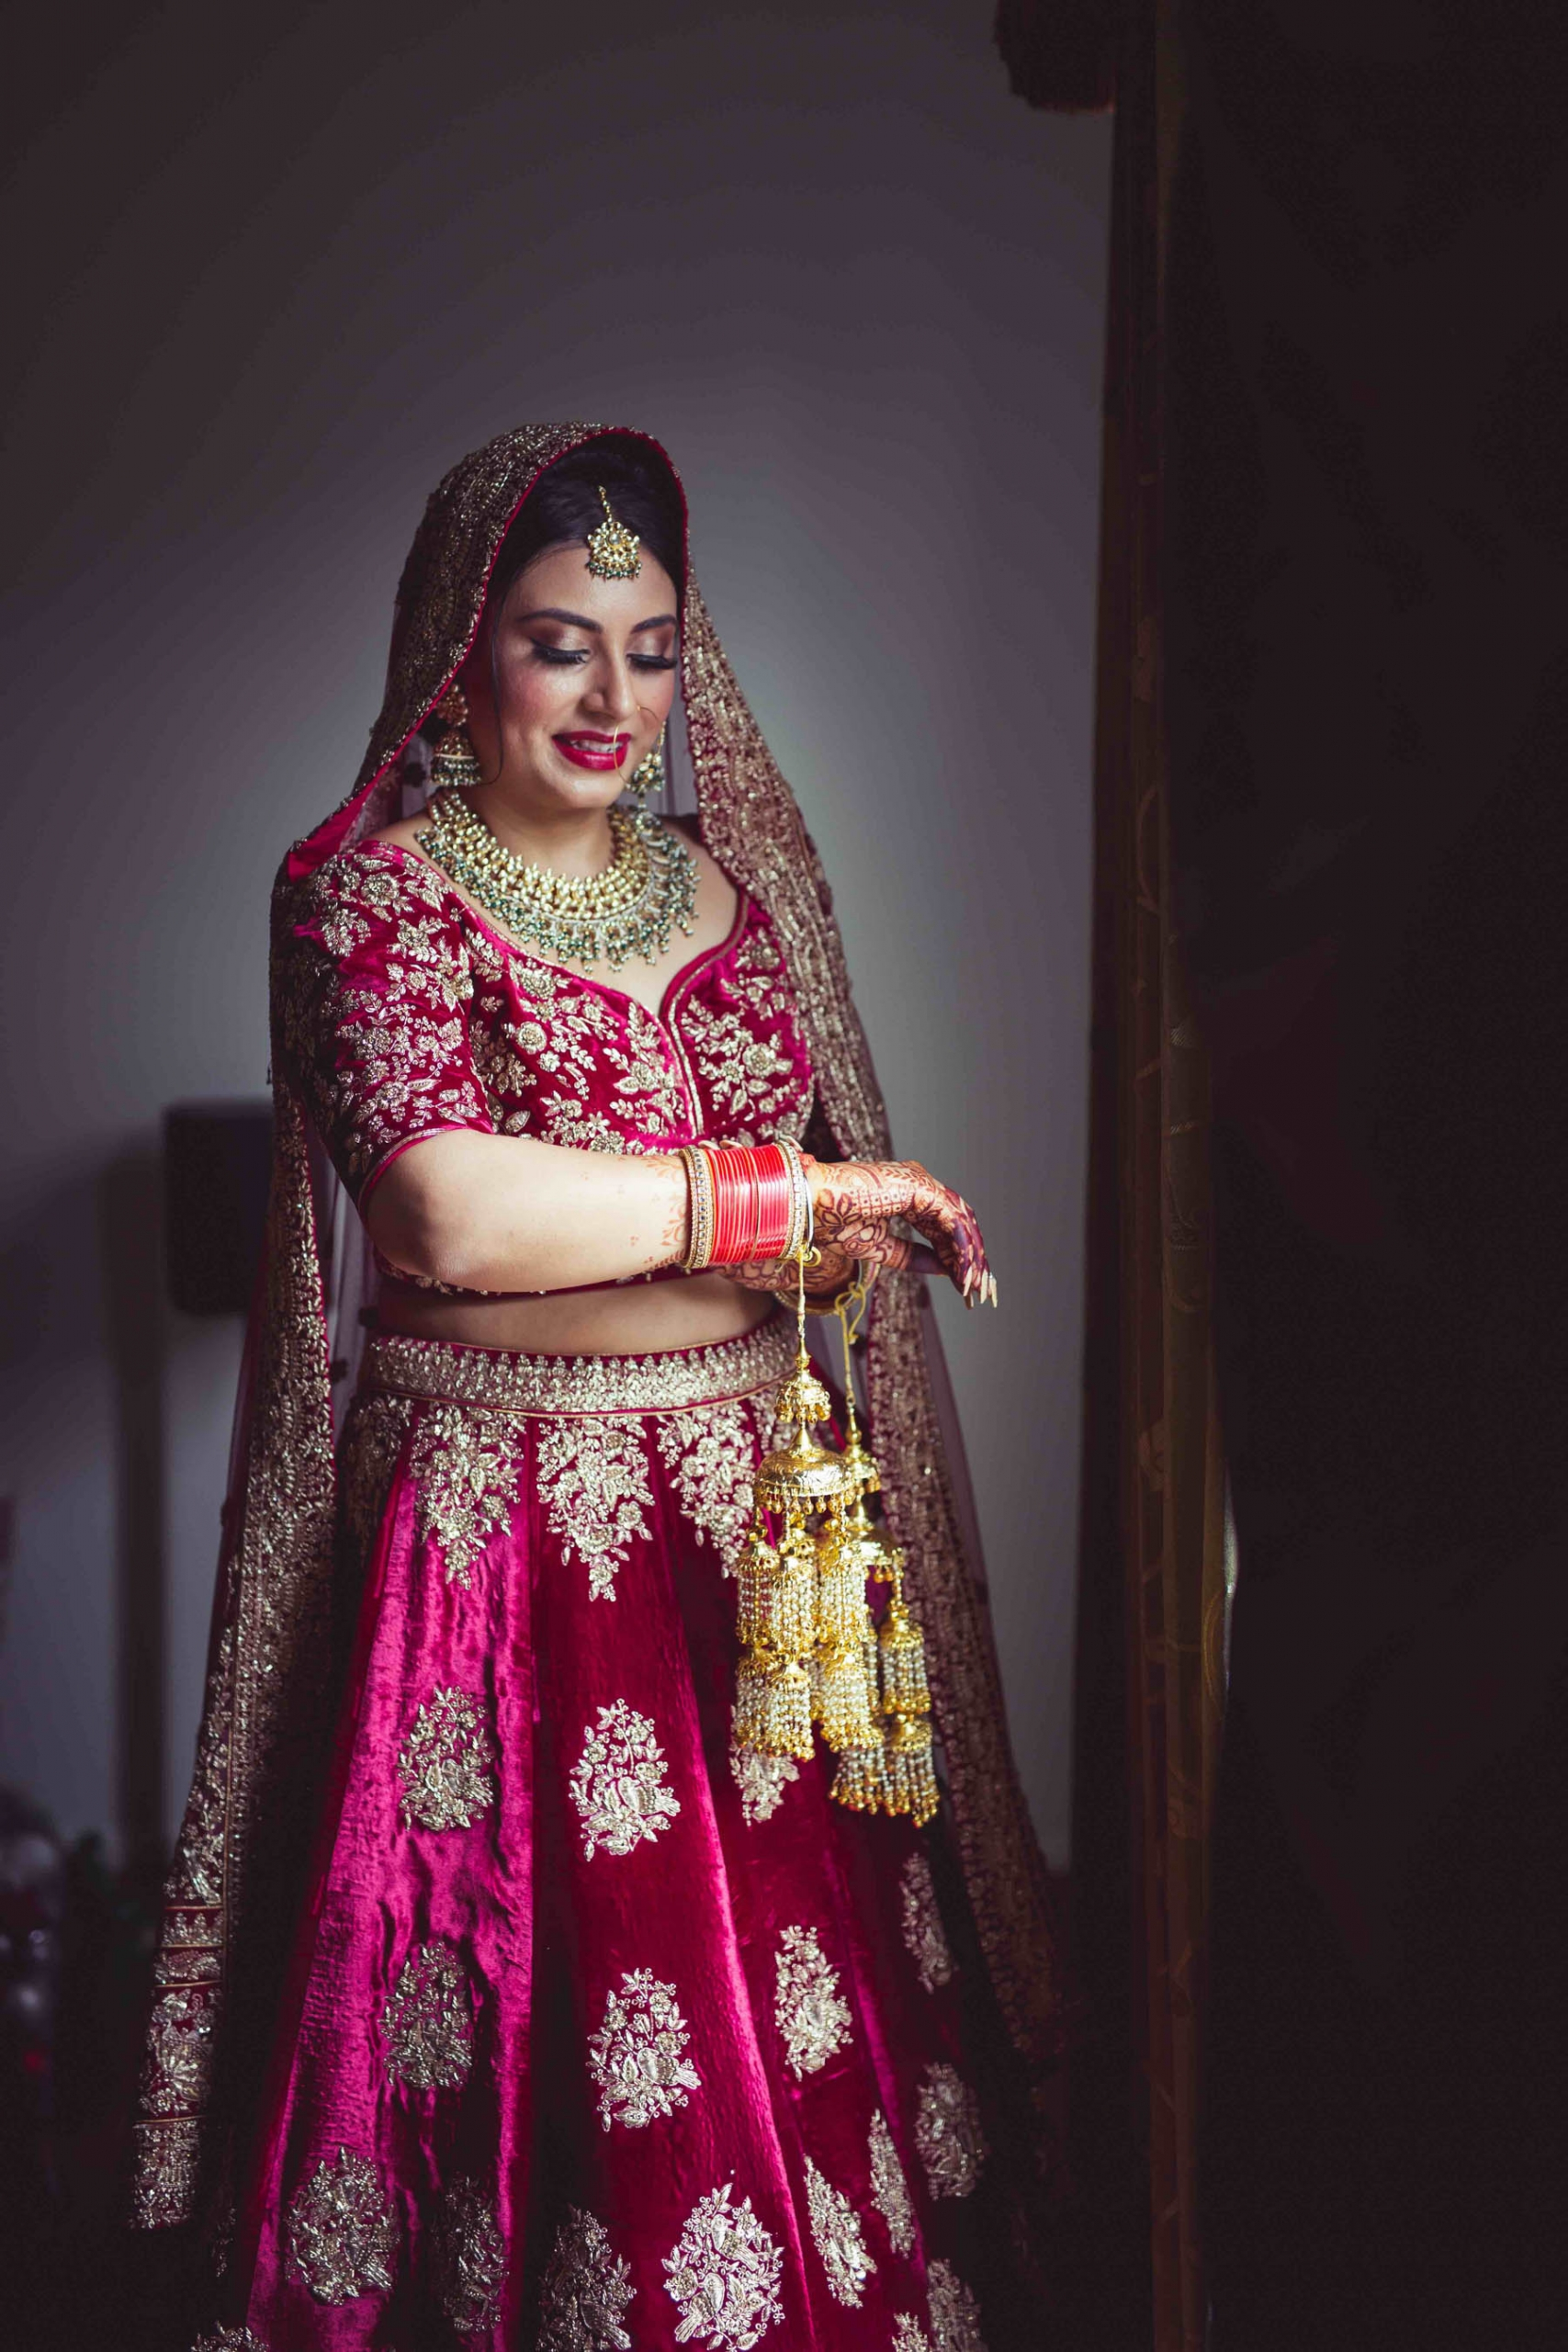 Melbourne bride, Kanika wearing Frontier Raas on her wedding day. Photography captured by Rolling Canvas.